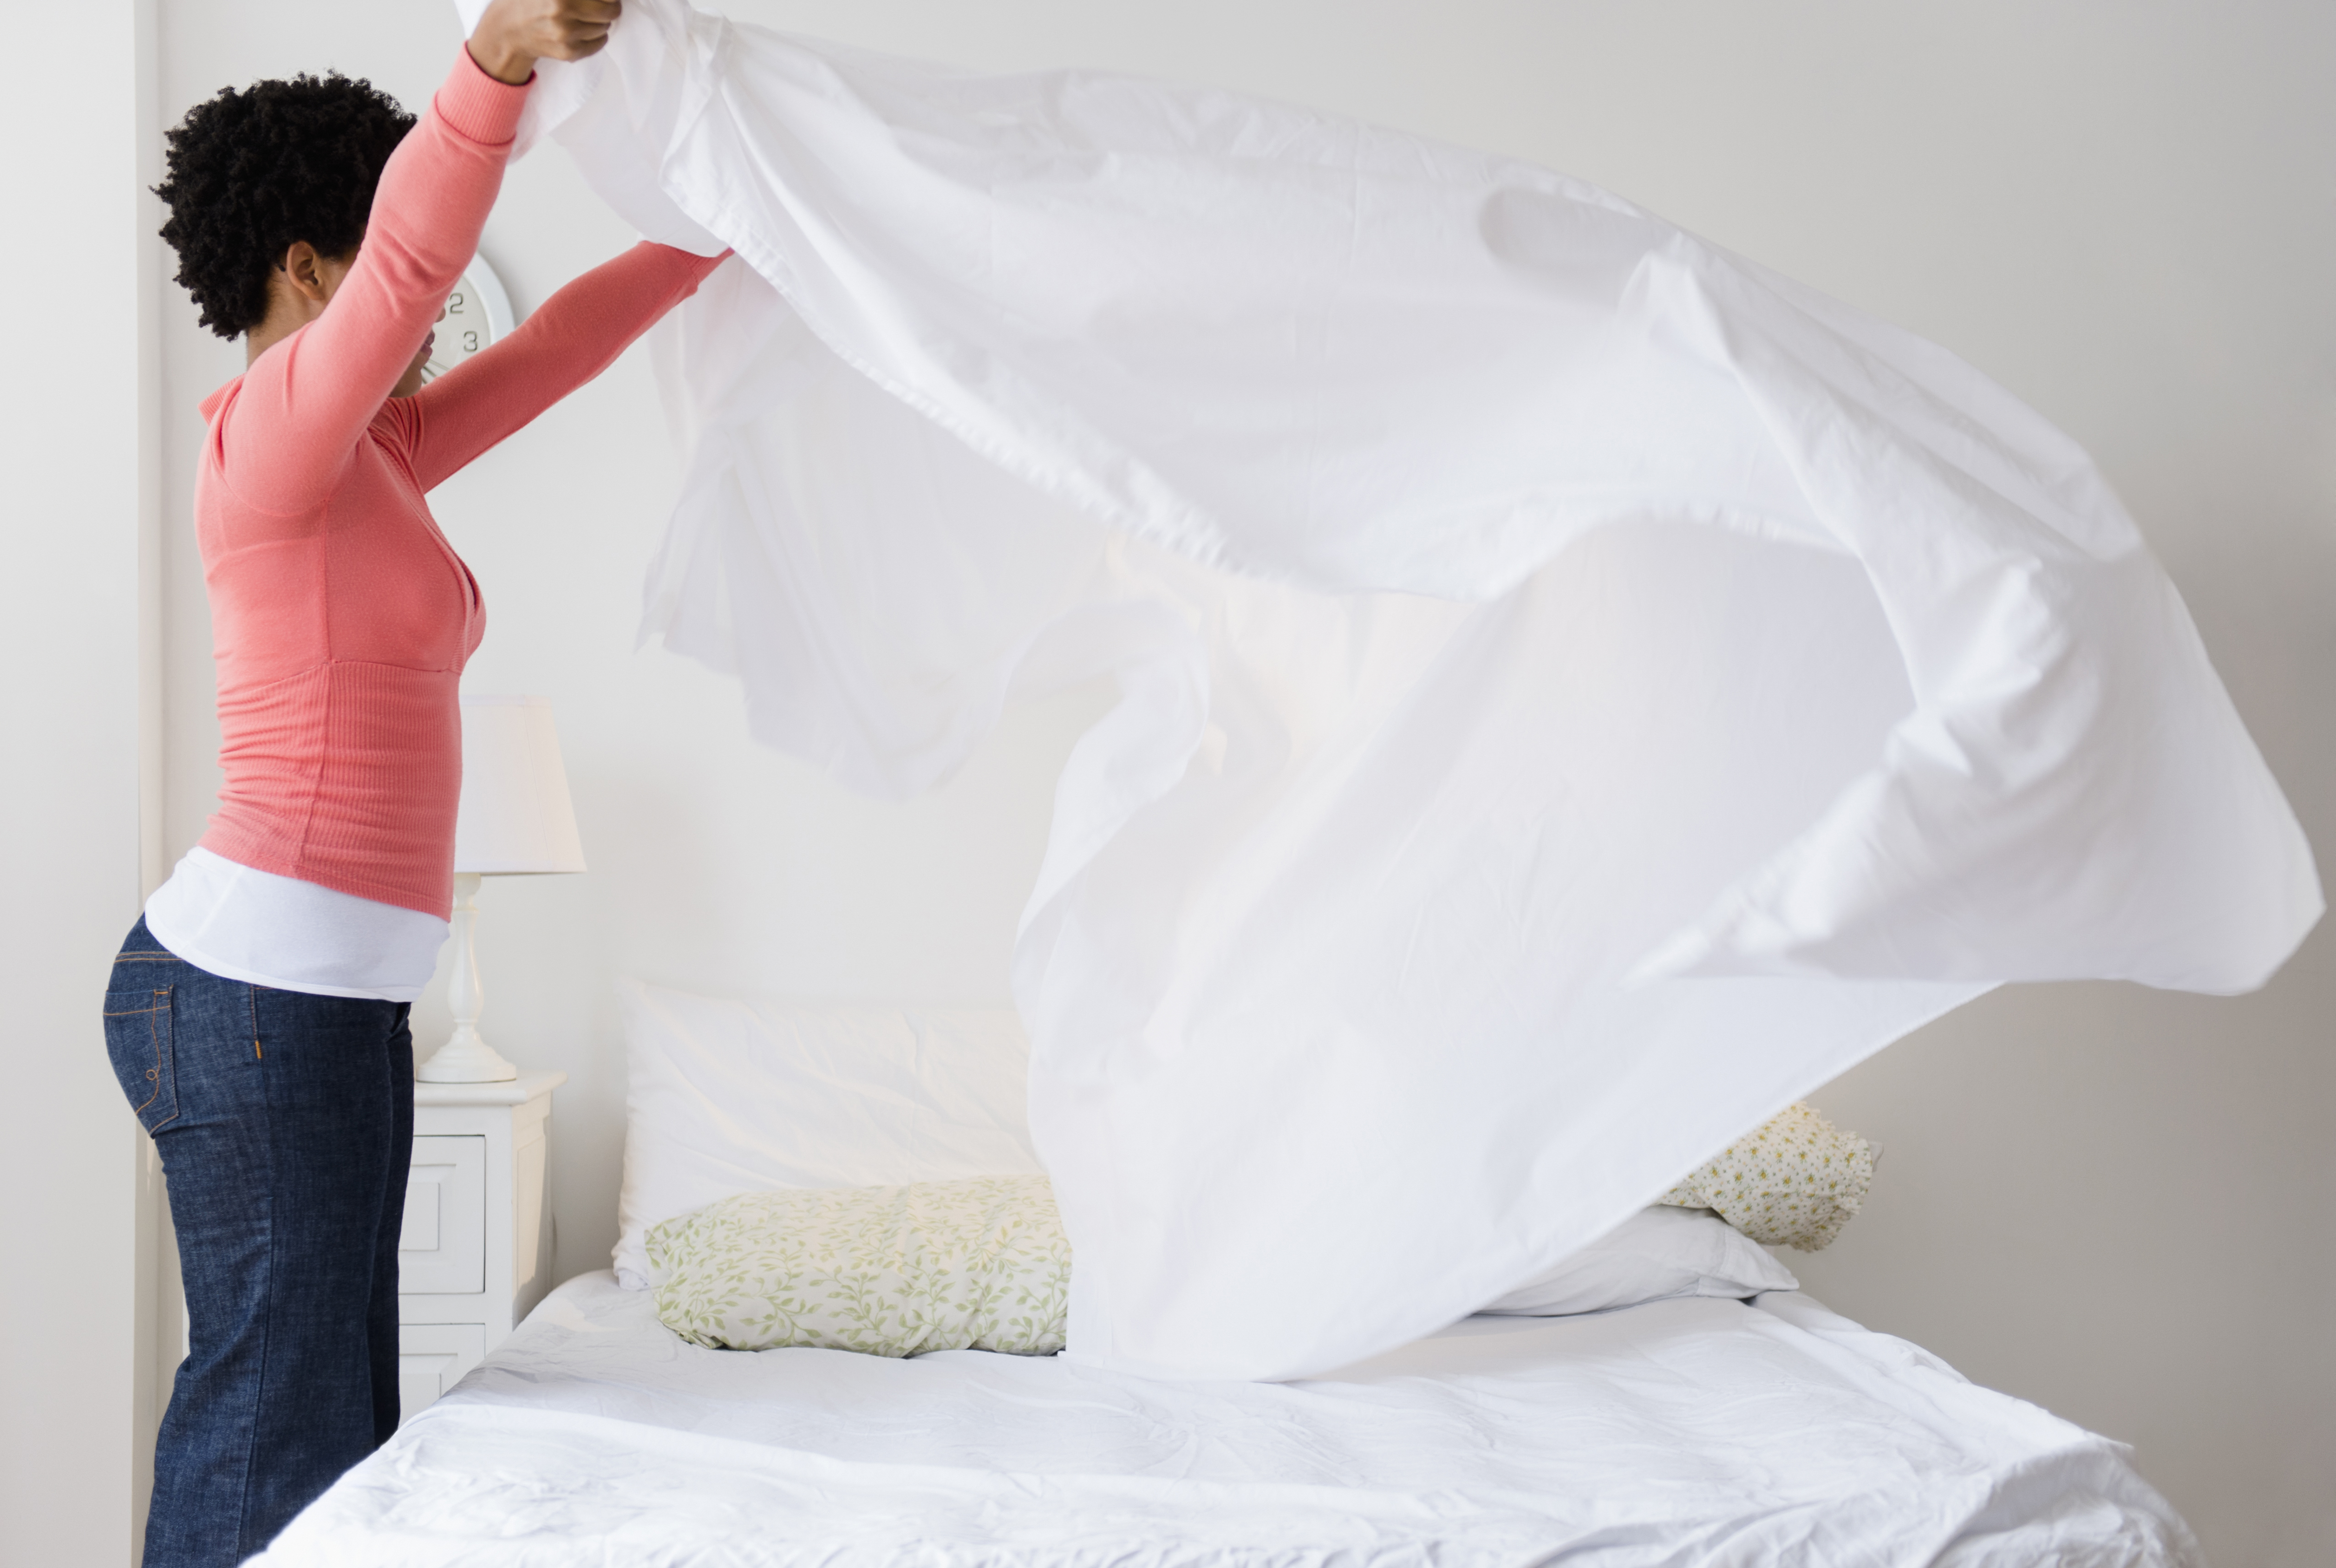 Woman putting clean white sheets on mattress.